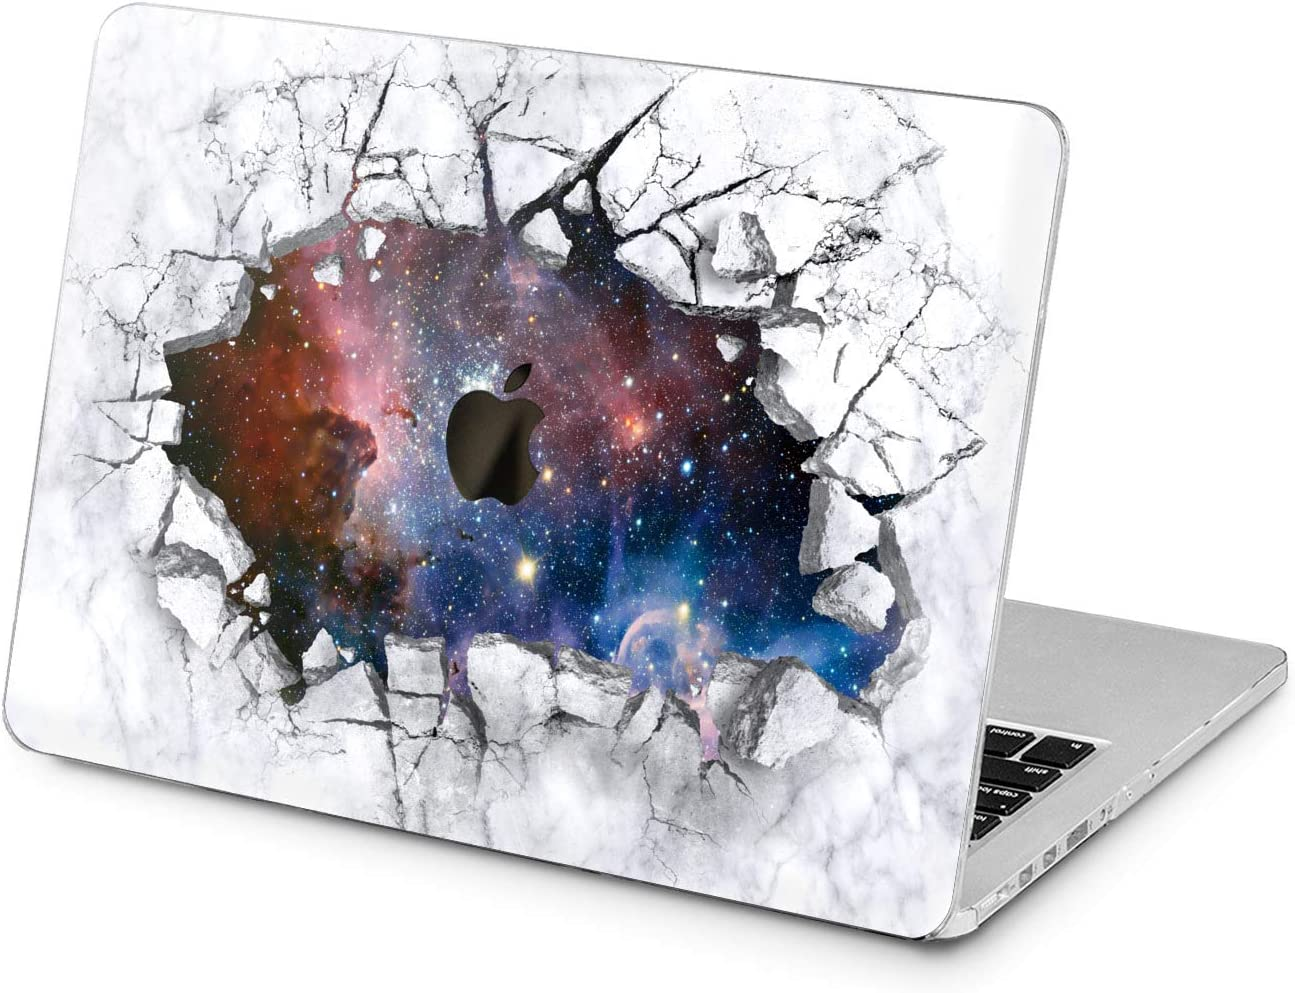 "Cavka Hard Shell Case for Apple MacBook Pro 13"" 2019 15"" 2018 Air 13"" 2020 Retina 2015 Mac 11"" Mac 12"" Broken Design Laptop Protective Galaxy Nice Print Marble Plastic Cover Cracked Space Blue Stars"